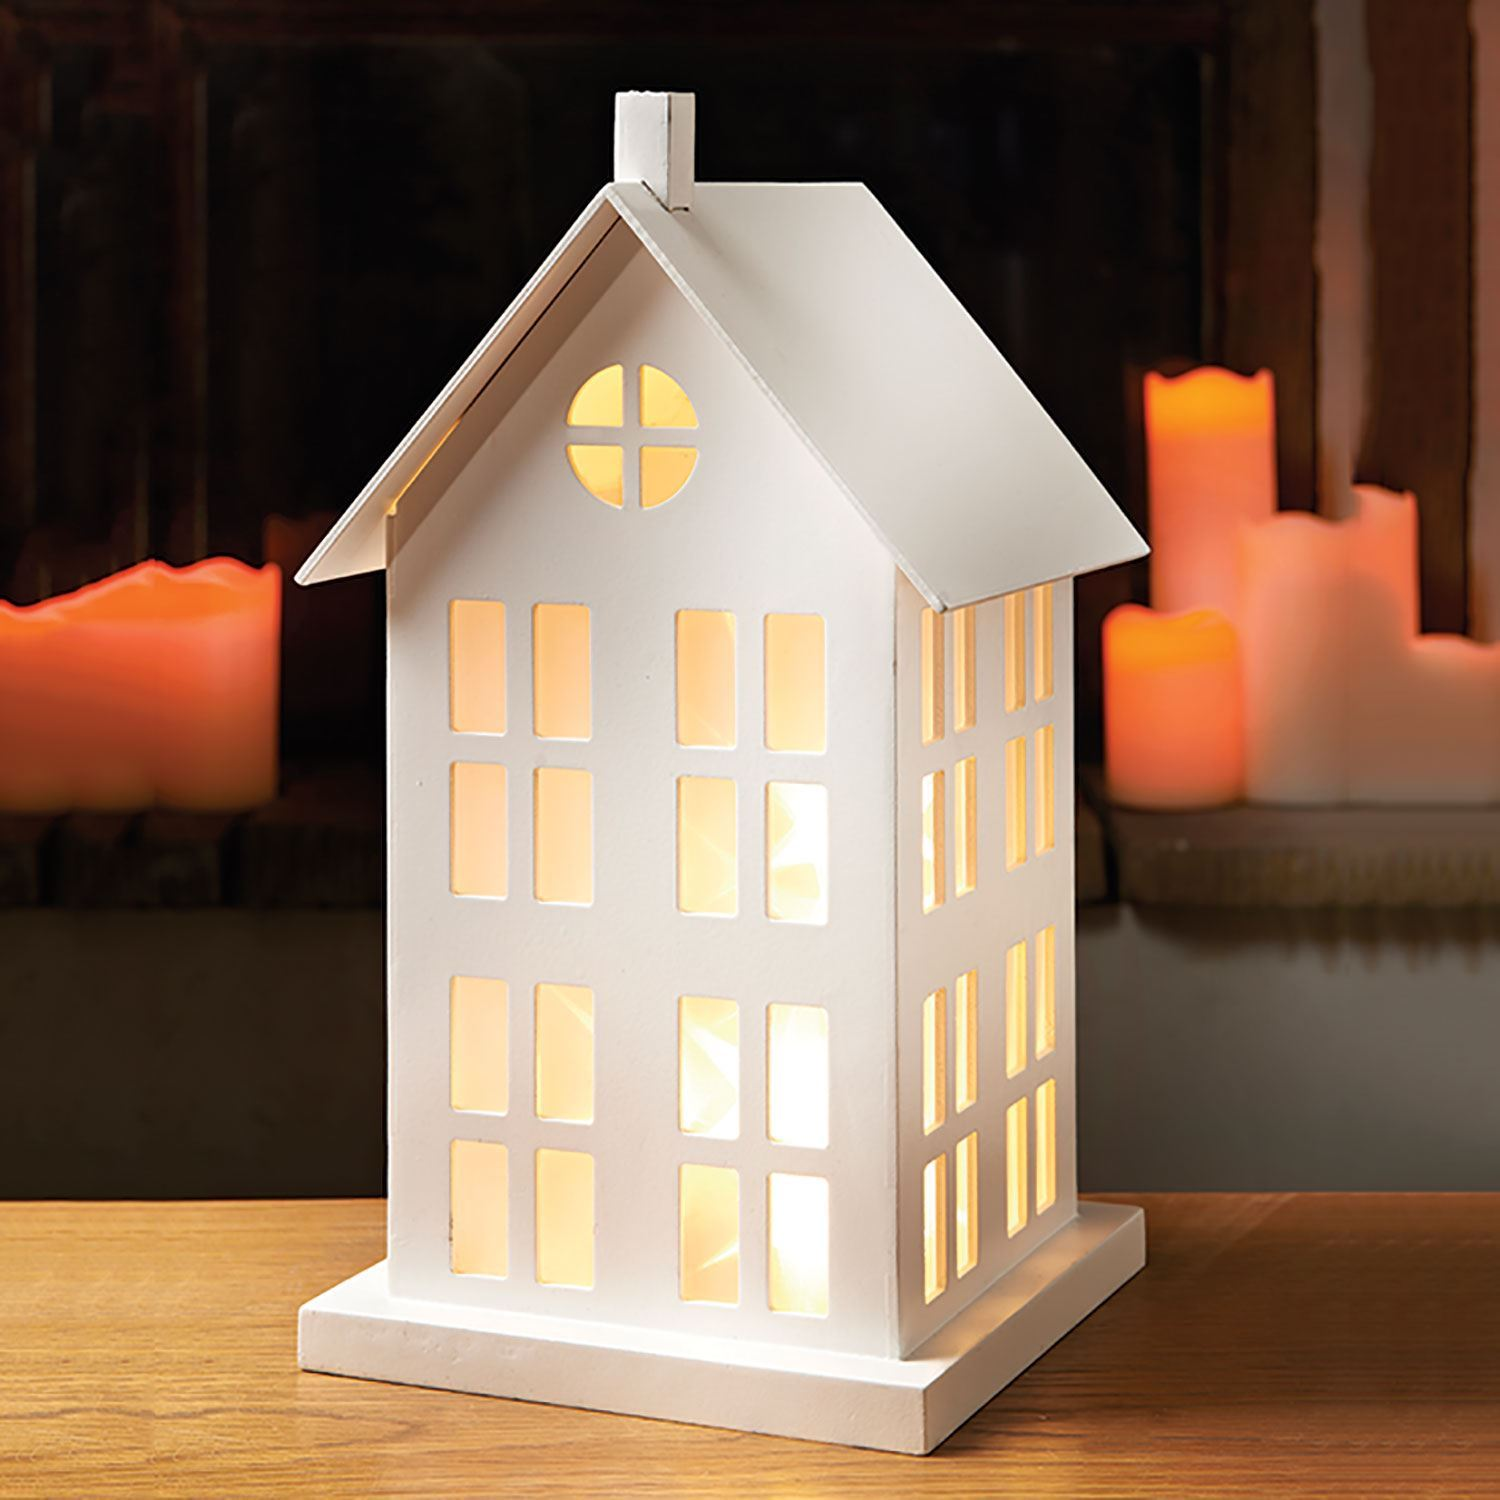 10 led light up wooden house chritmas wedding party gift lit with